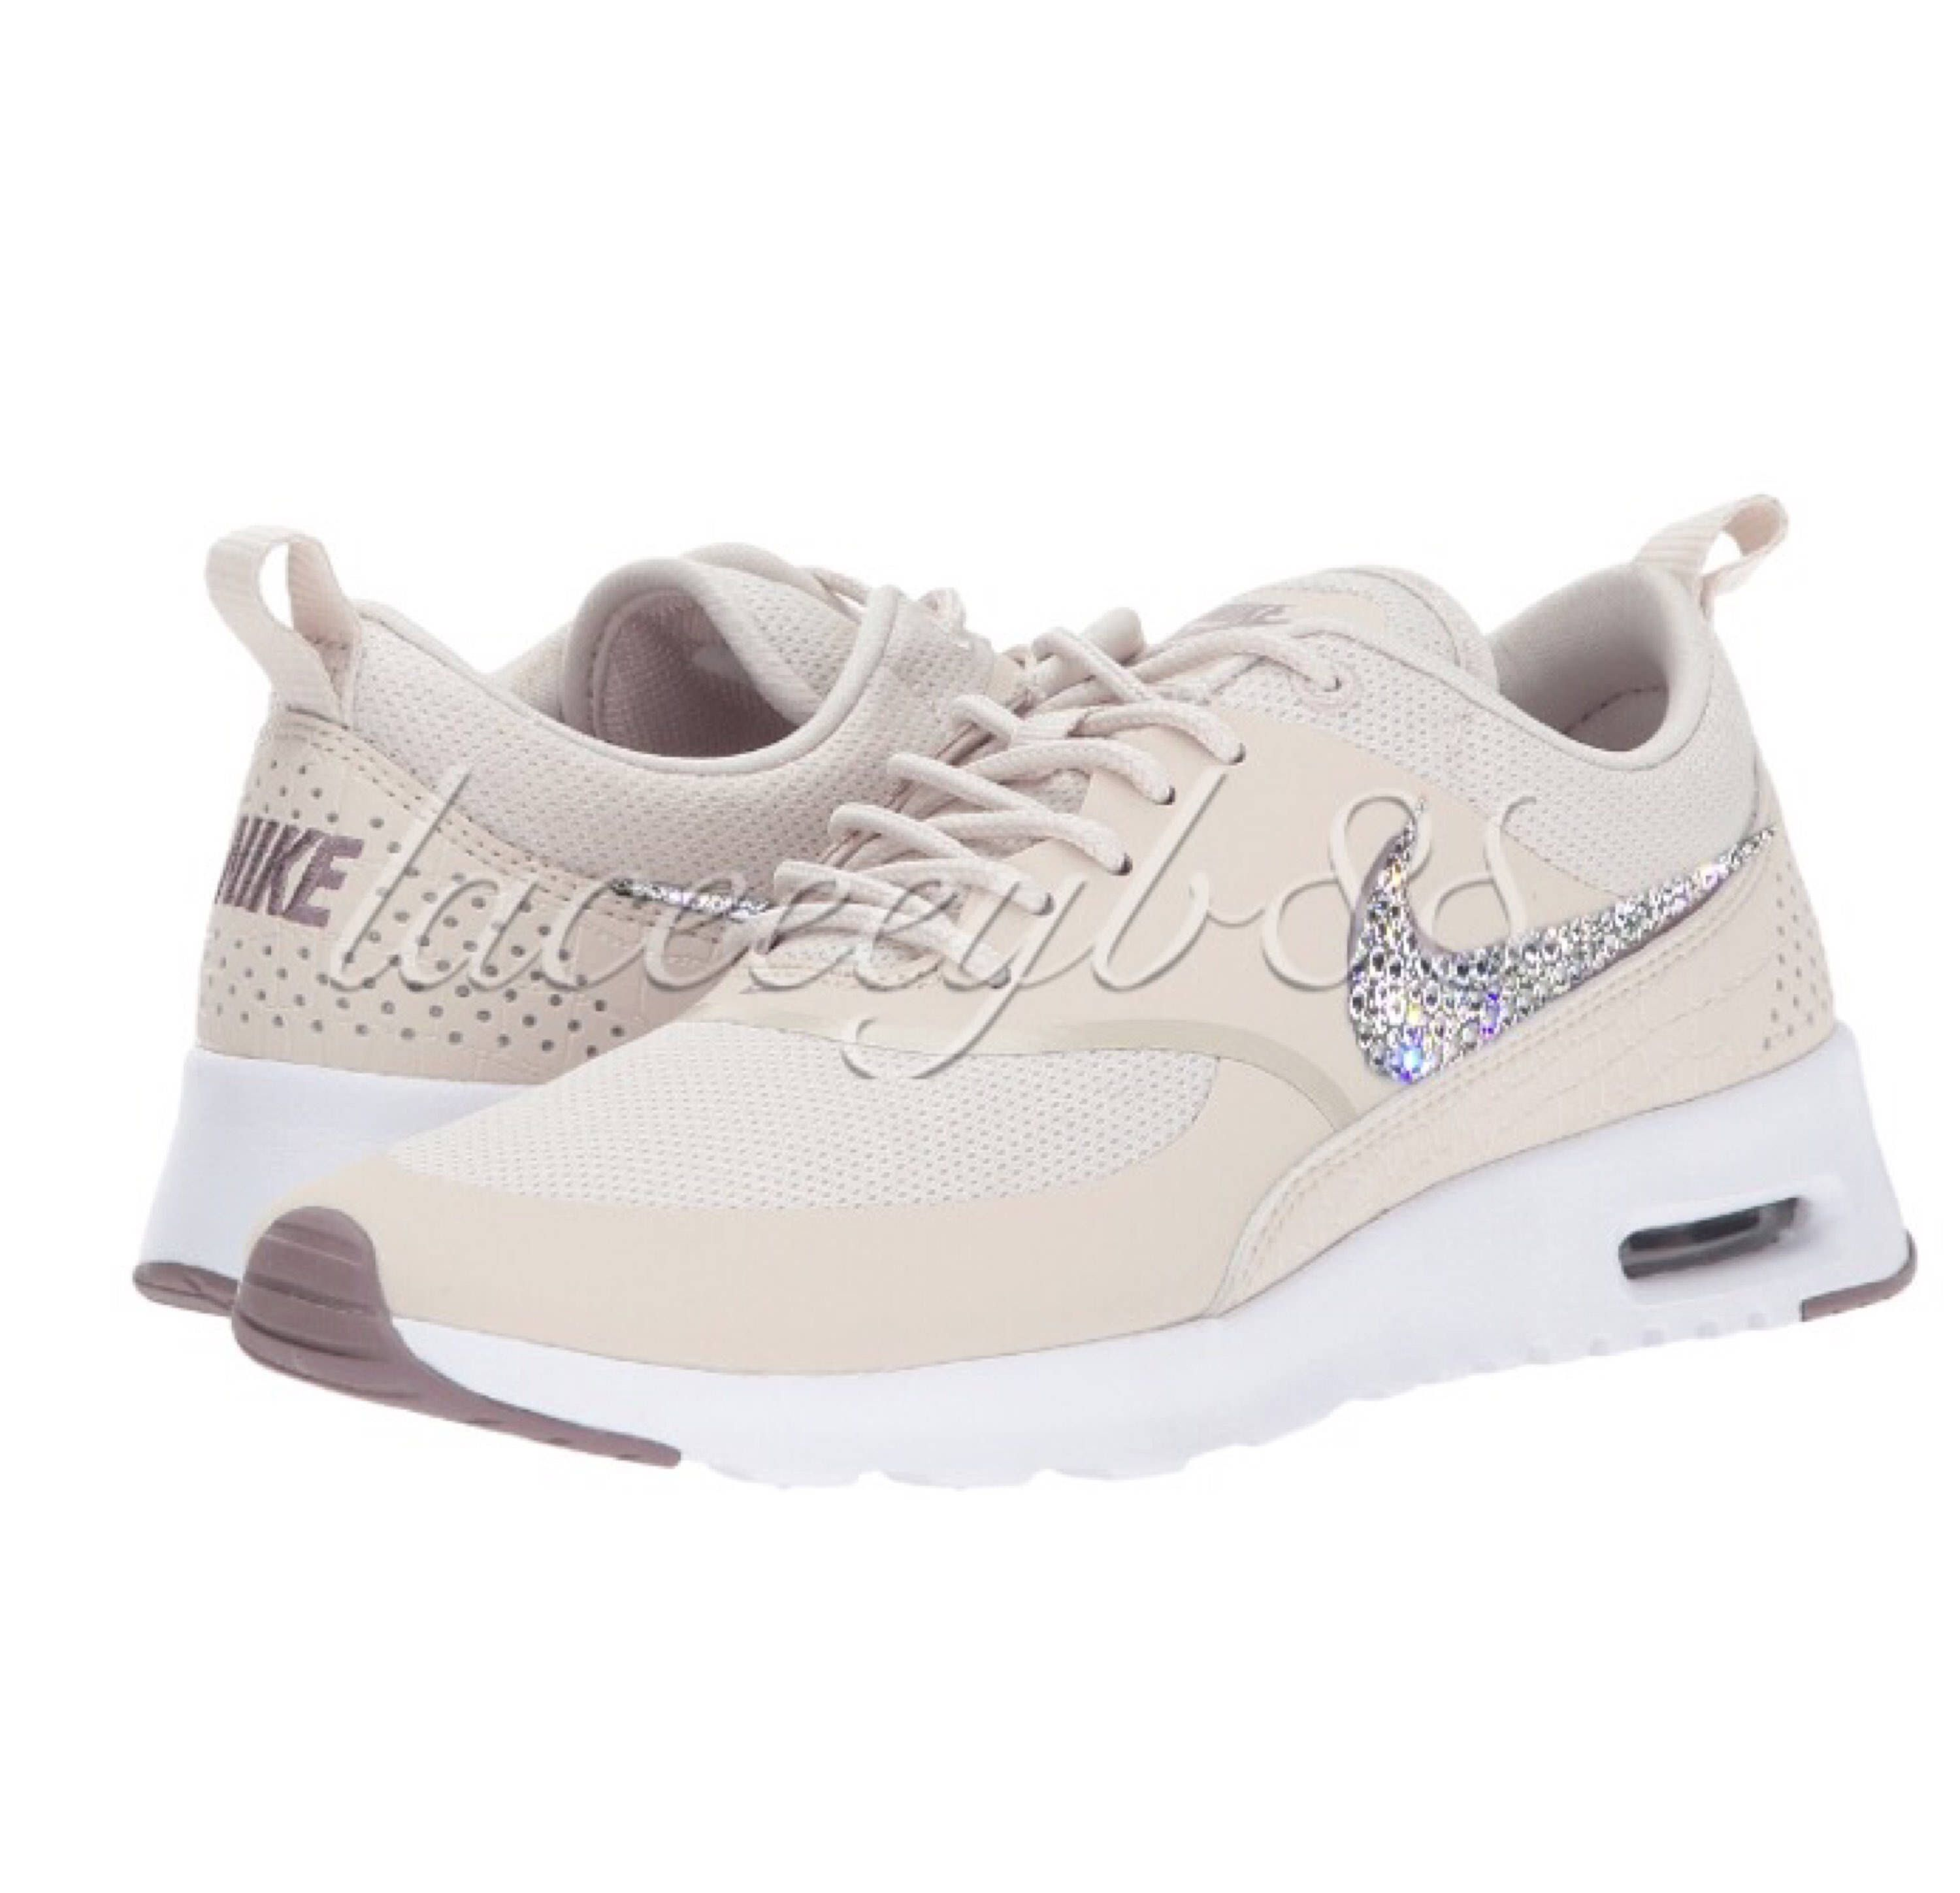 Light Orewood Brown Taupe Grey Trainers Nike Air Max Thea